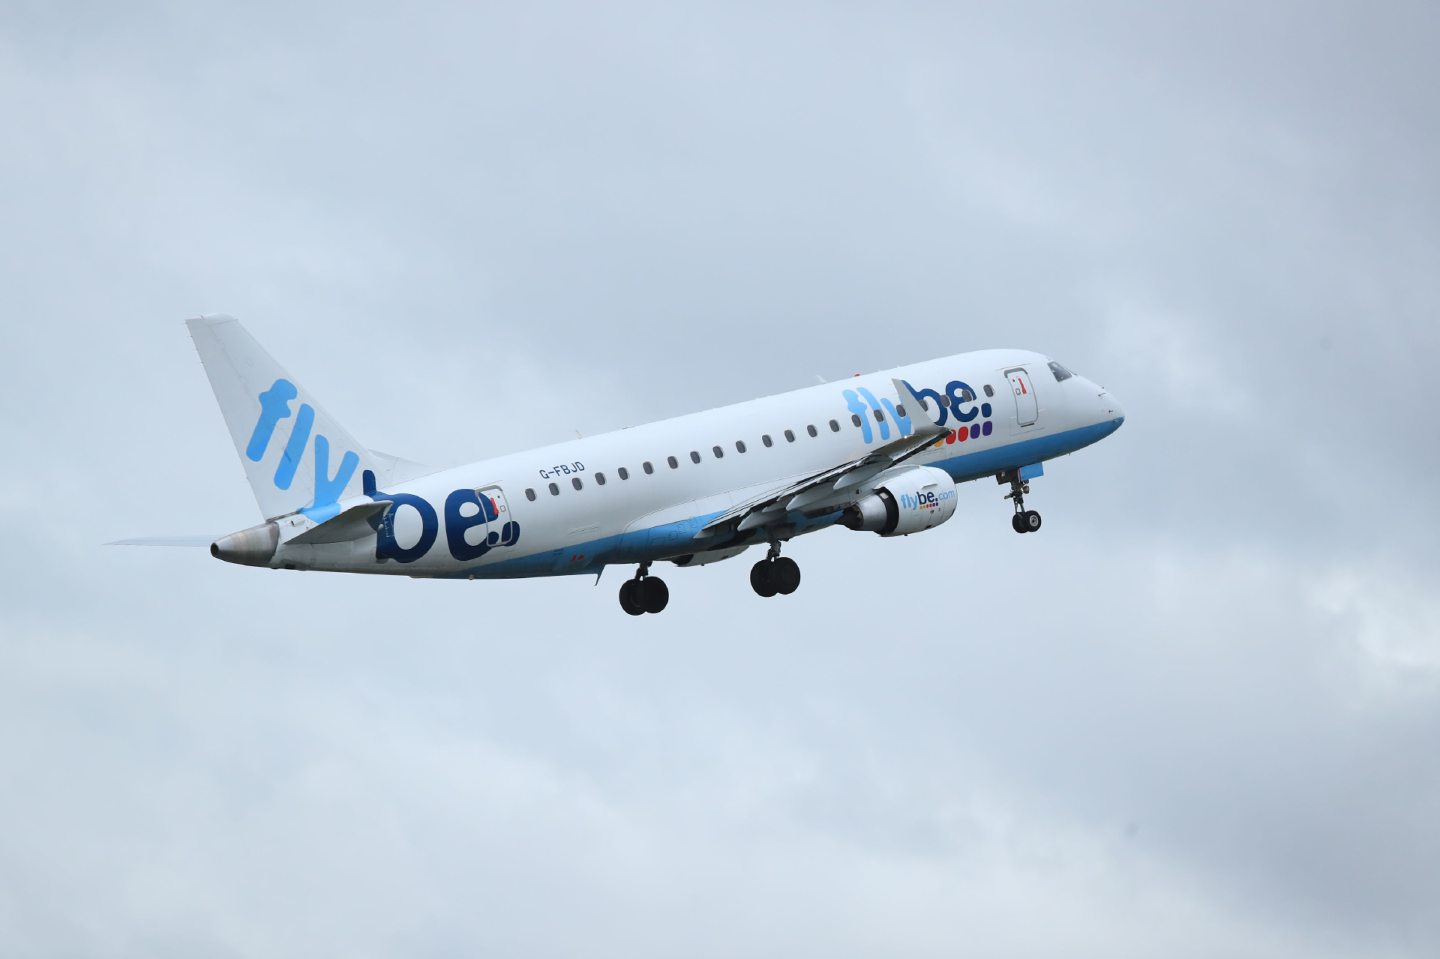 File photo dated 13/01/20 of a Flybe flight departing from Manchester Airport as the struggling airline is on the brink of collapse. PA Photo. Picture date: Thursday March 5, 2020. See PA story AIR FlyBe. Photo credit should read: Peter Byrne/PA Wire